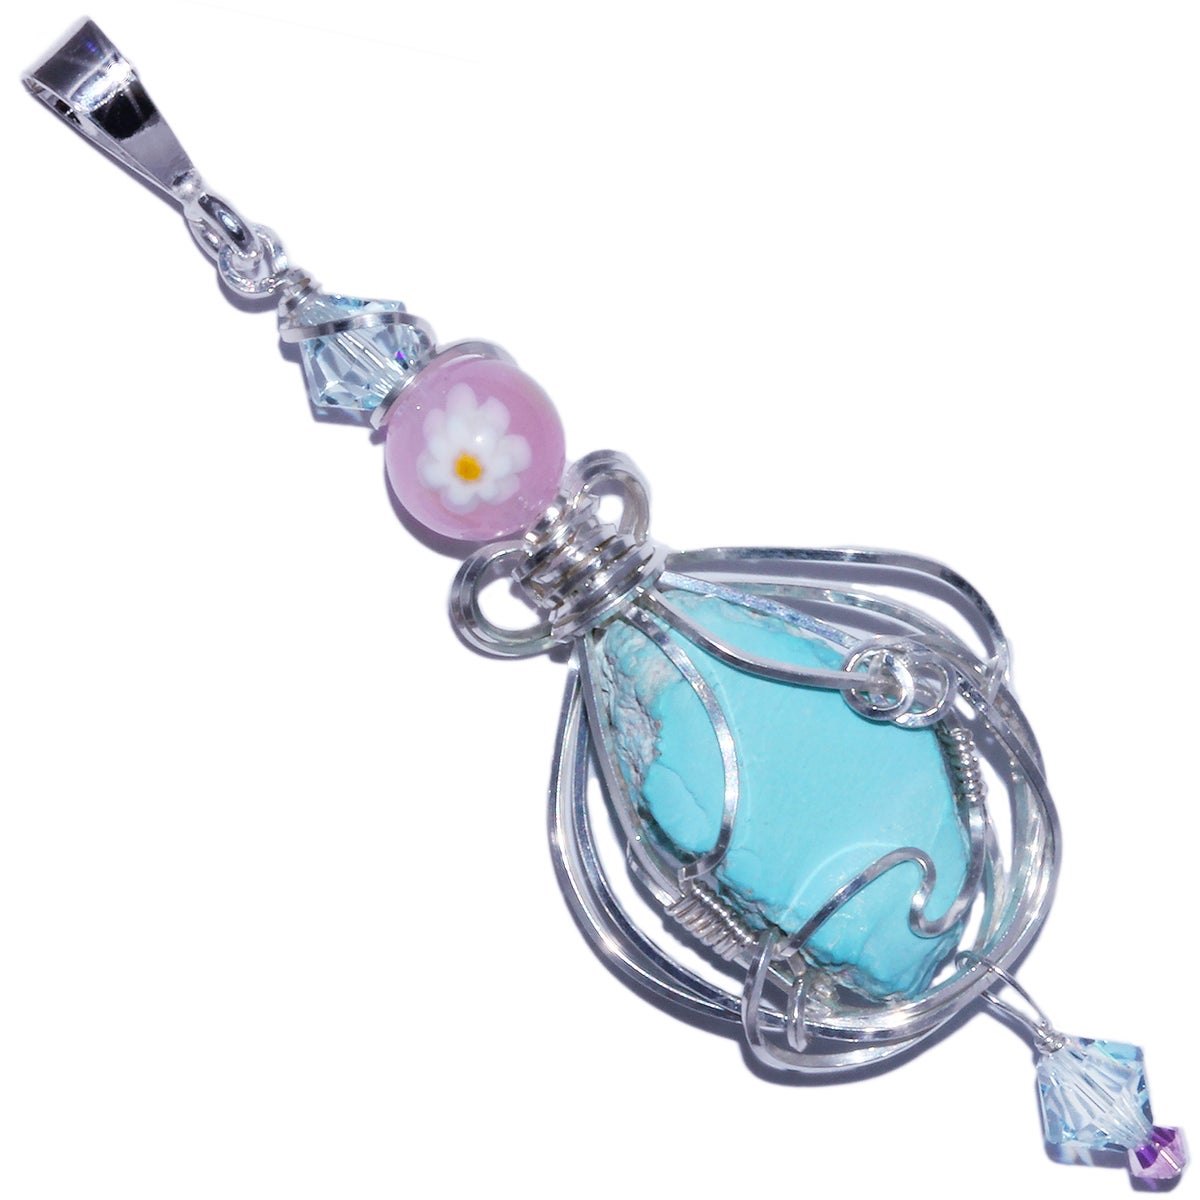 Sleeping Beauty Turquoise Handmade Pendant with Venetian Glass Fiori Bead